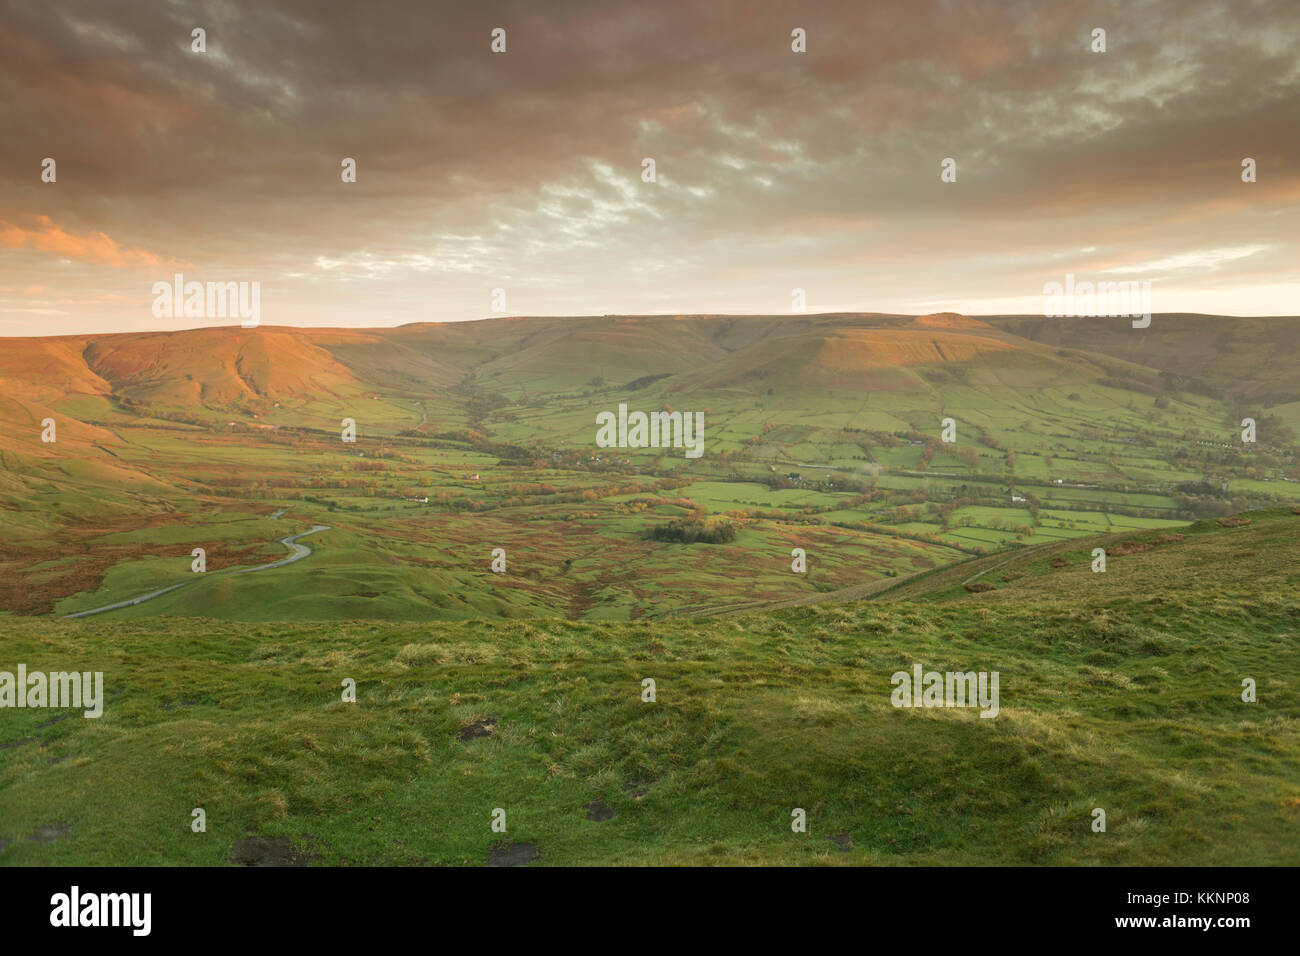 UK, Mam Tor, the view from Mam Tor towards Edale, at sunrise. - Stock Image